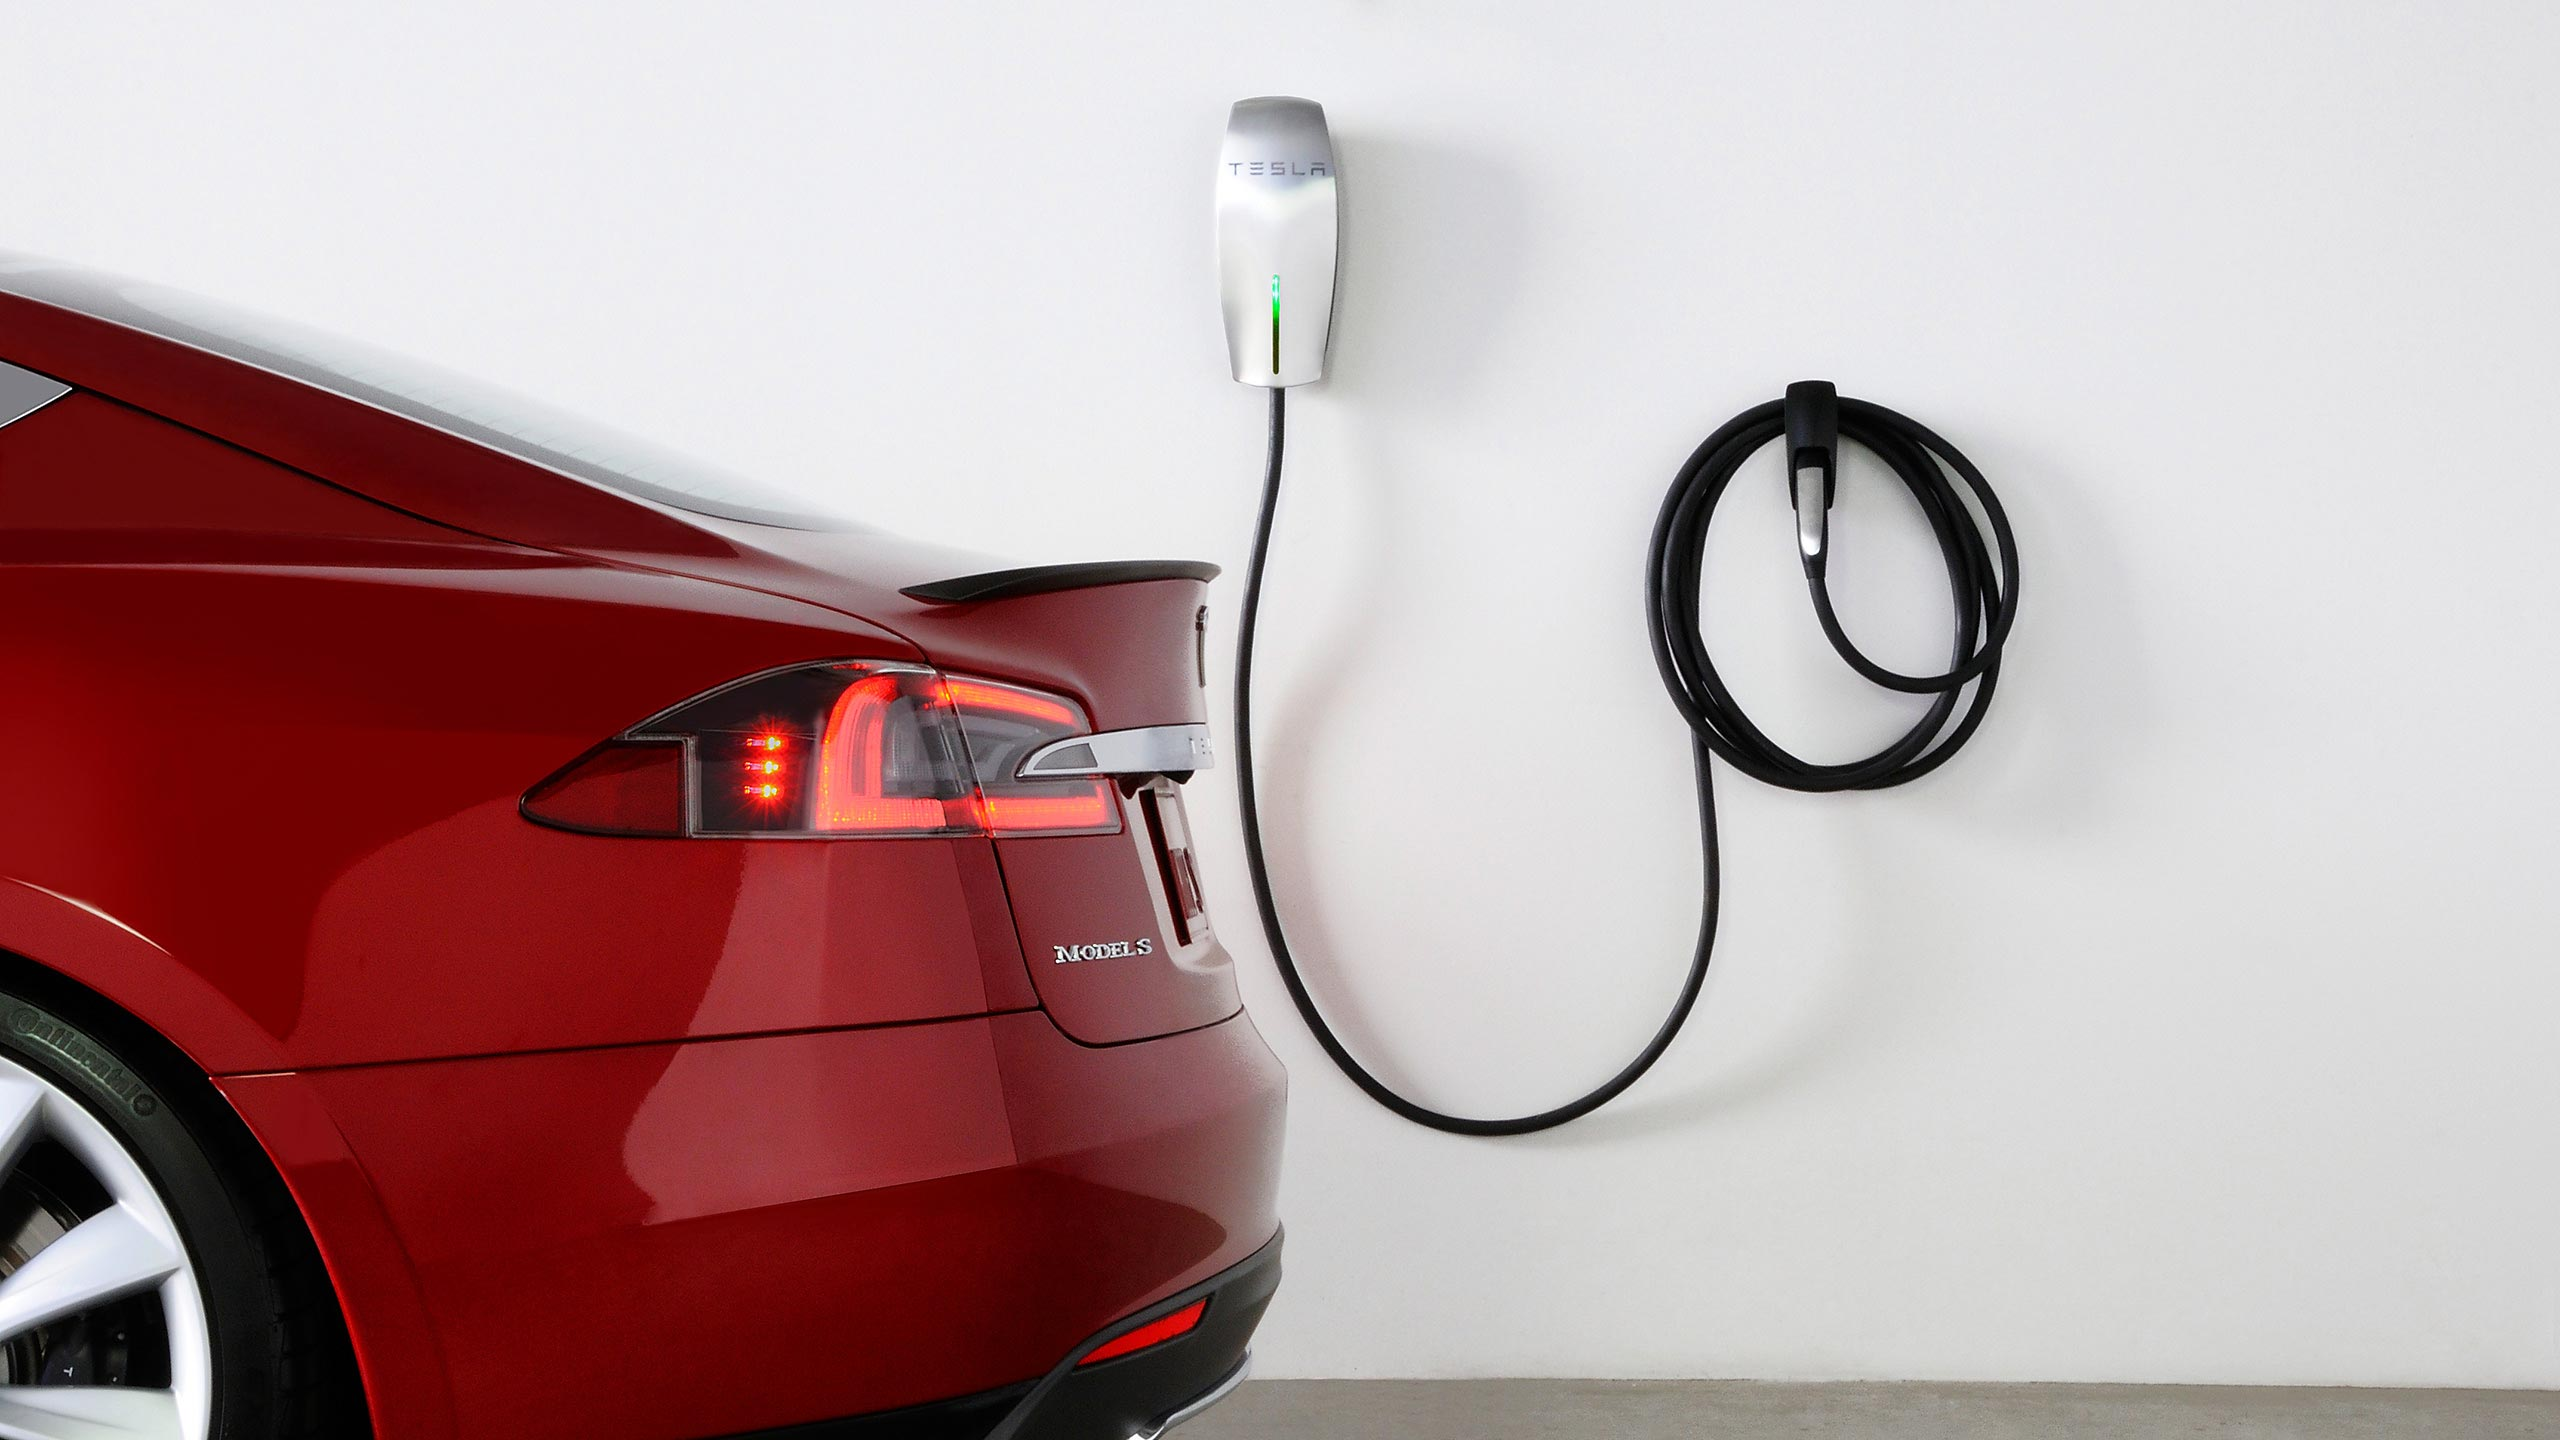 EV Charger Installations in Costa Mesa, CA | EV Home Charging Specialists in Costa Mesa, CA